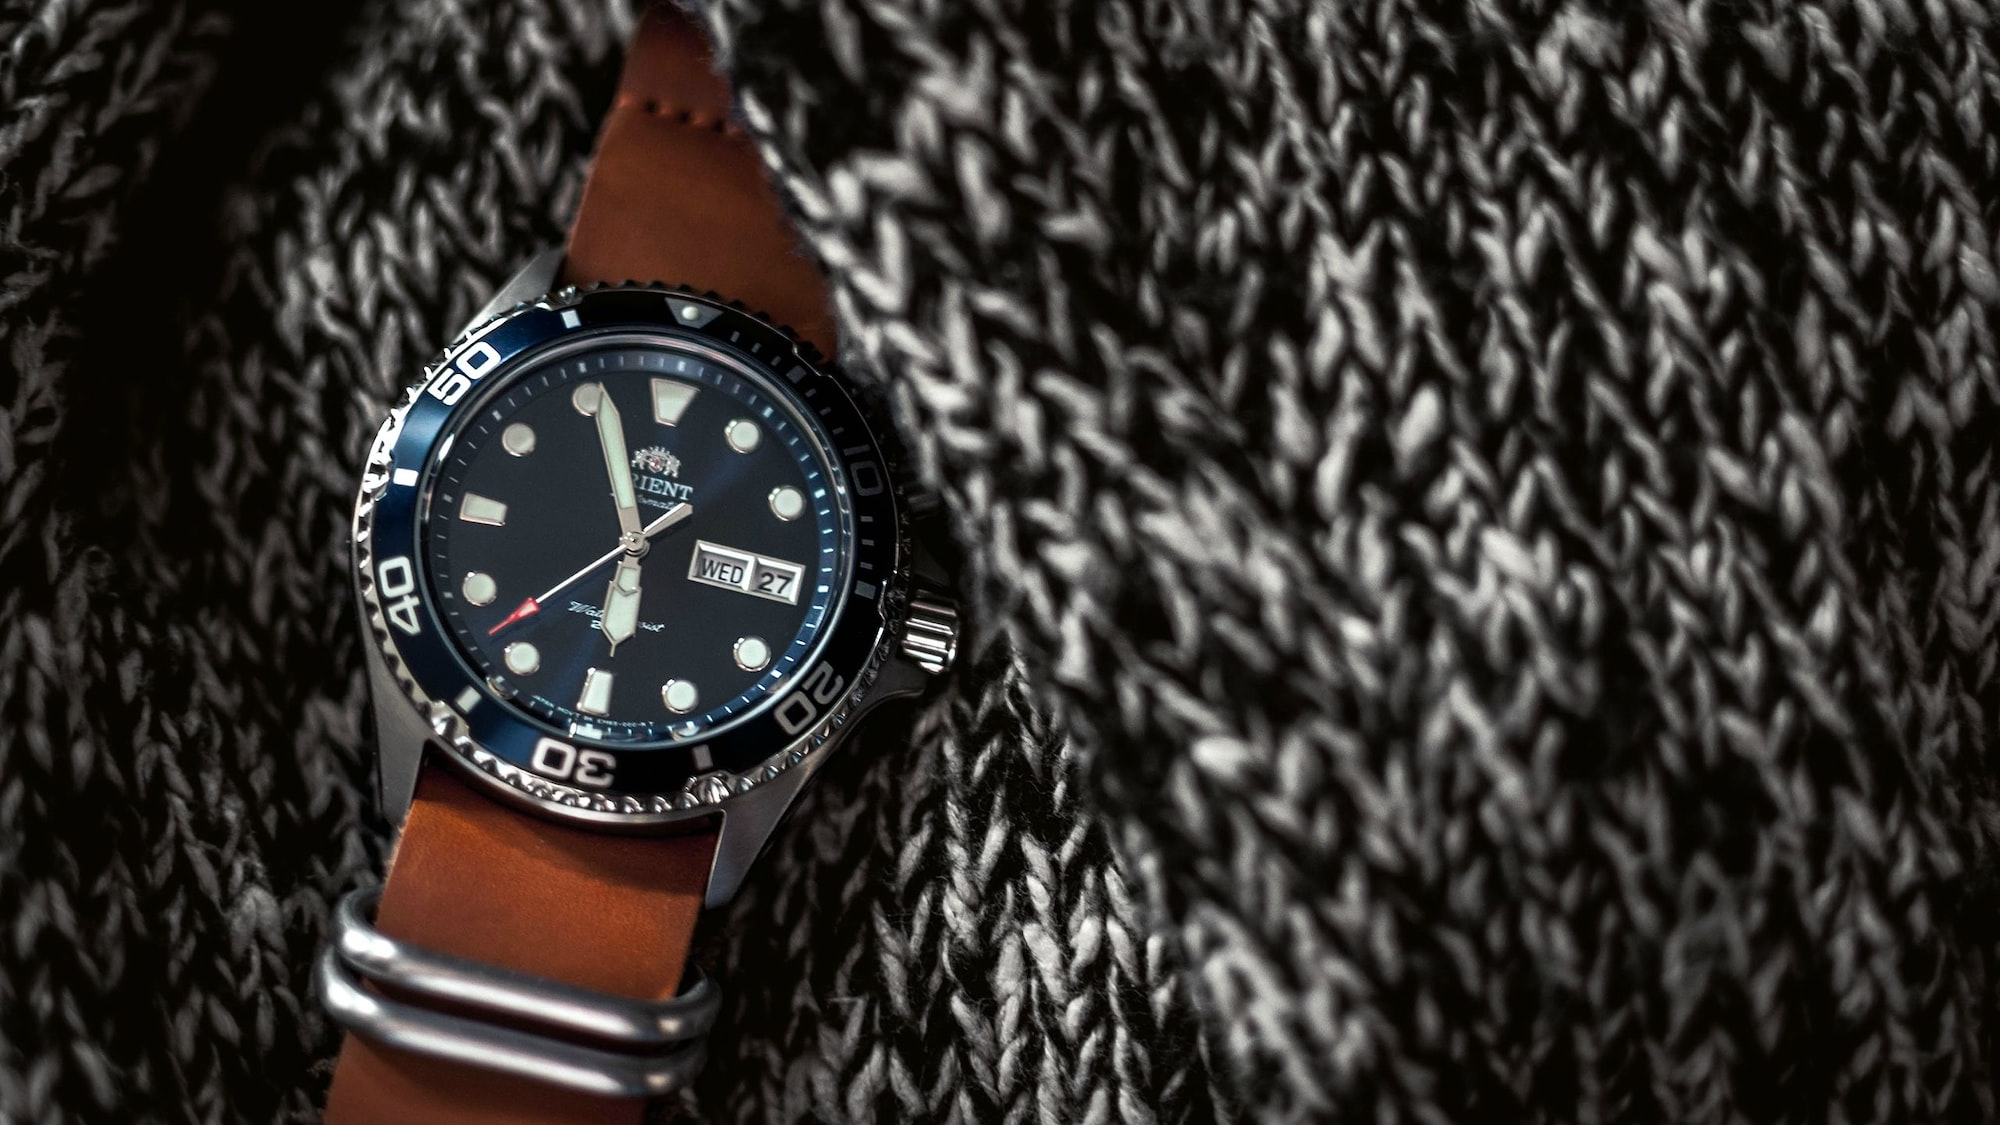 Guide: Top 5 Watches Under $100 for Him